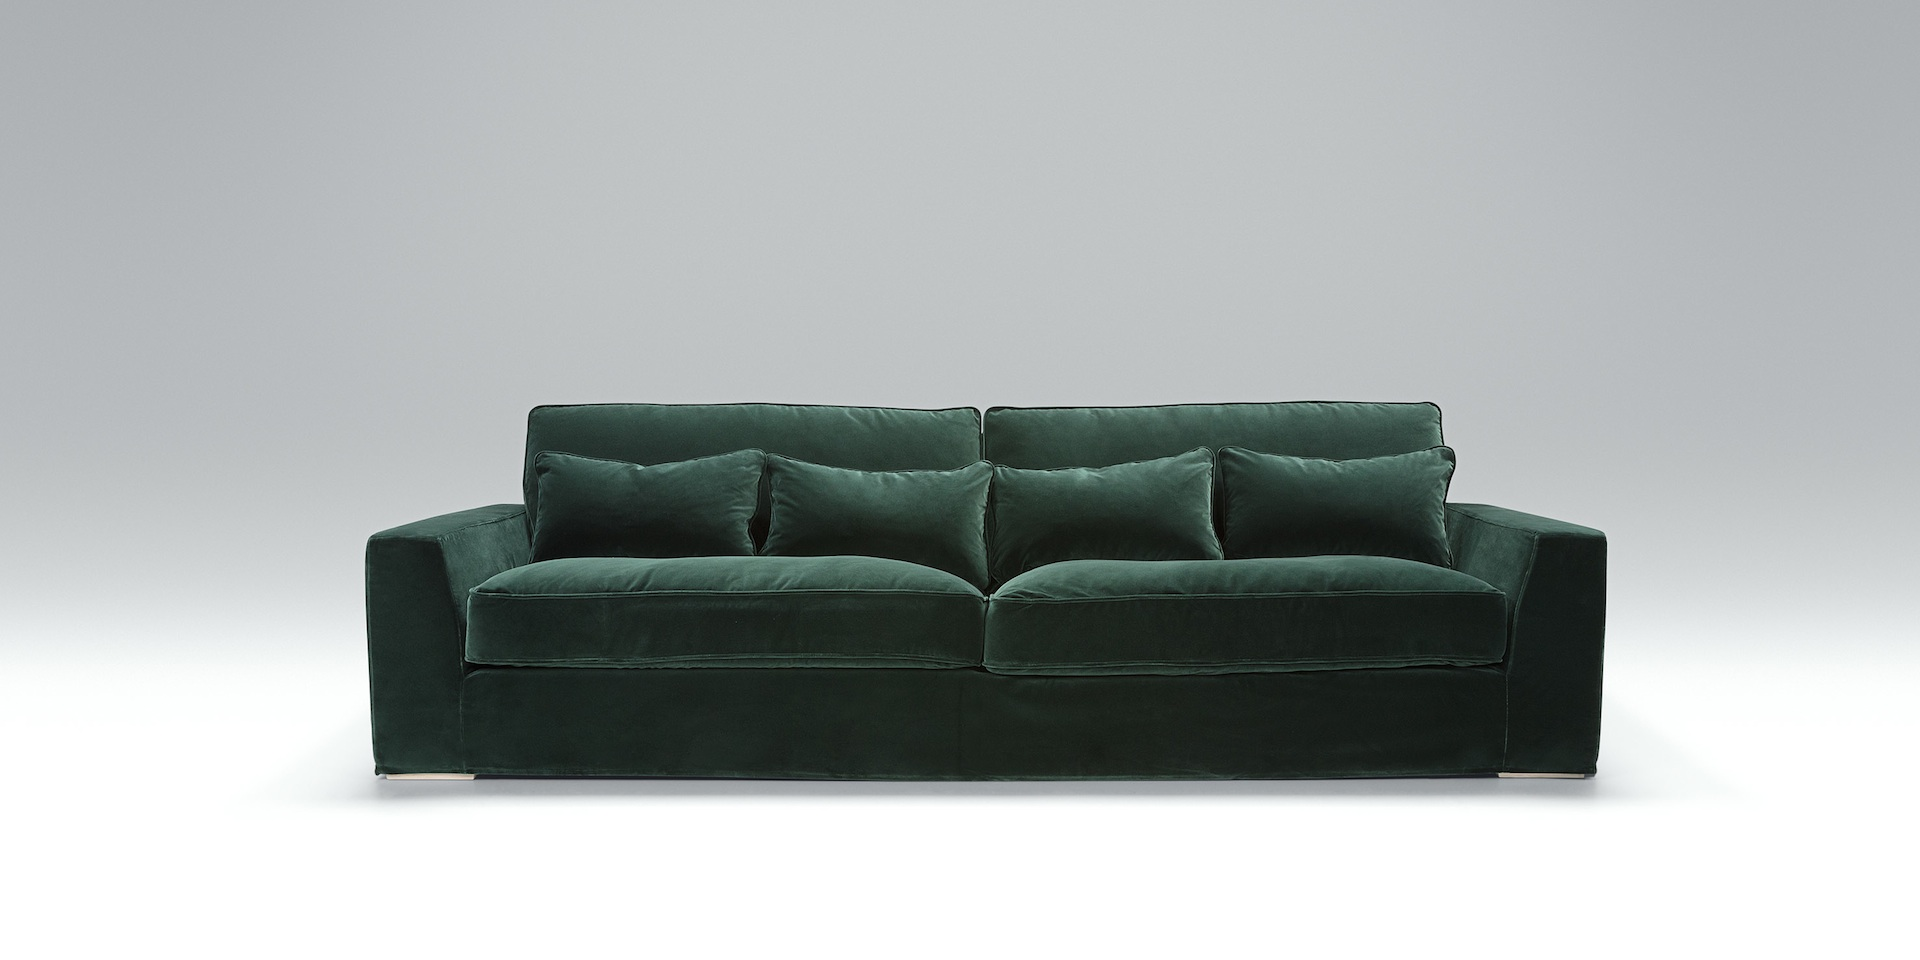 NEW_YORK_shadow_4seater_lario1402_dark_green_1